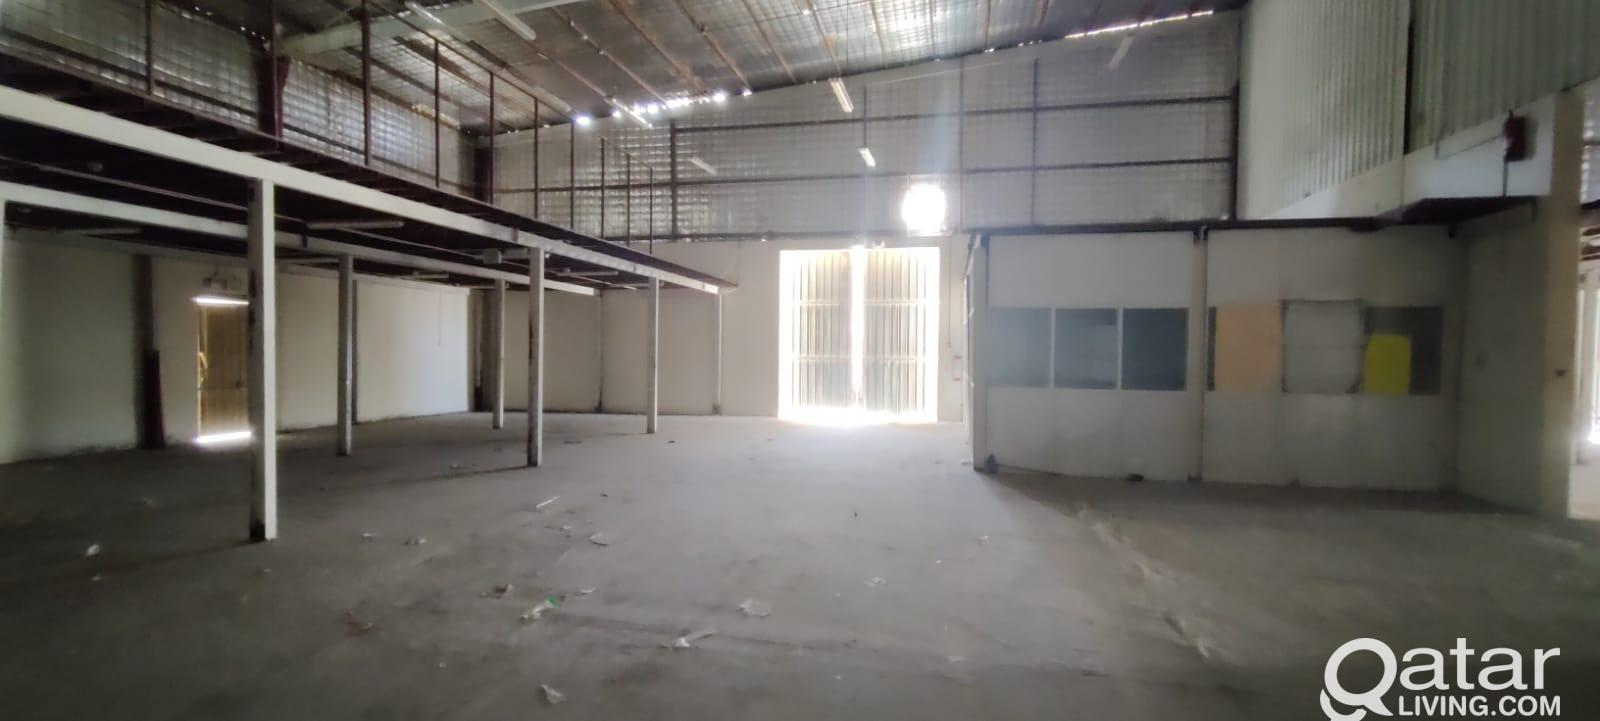 800 Store & 12 Room For Rent